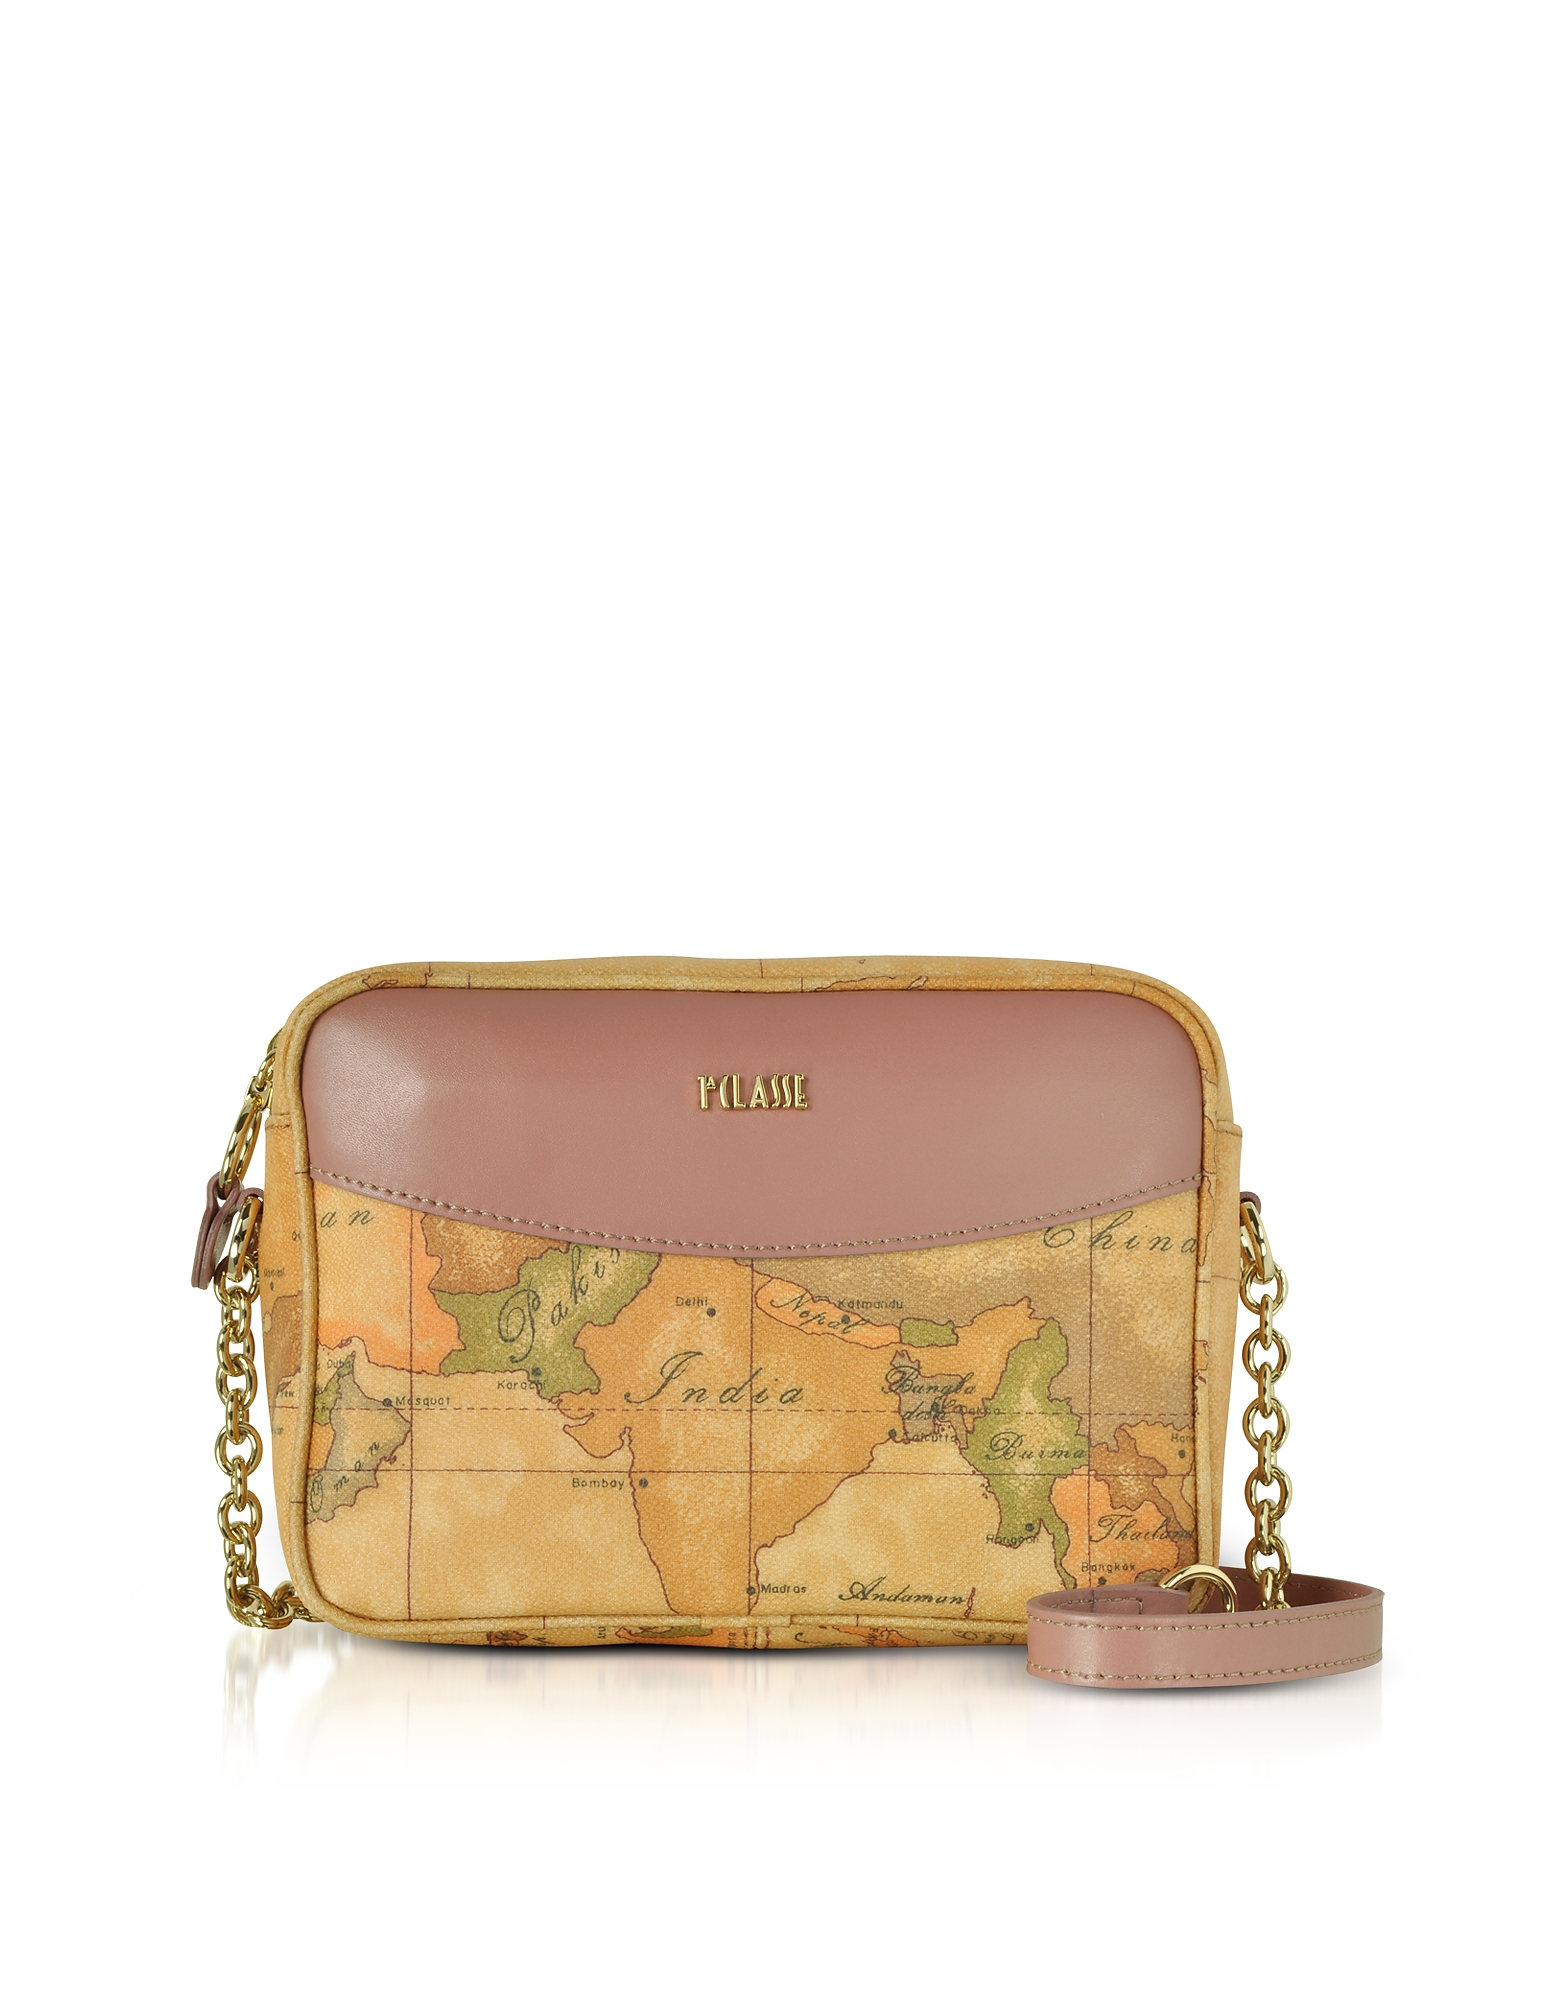 Alviero Martini 1A Classe Handbags, The Goldie Geo Printed Coated Canvas Messenger Bag